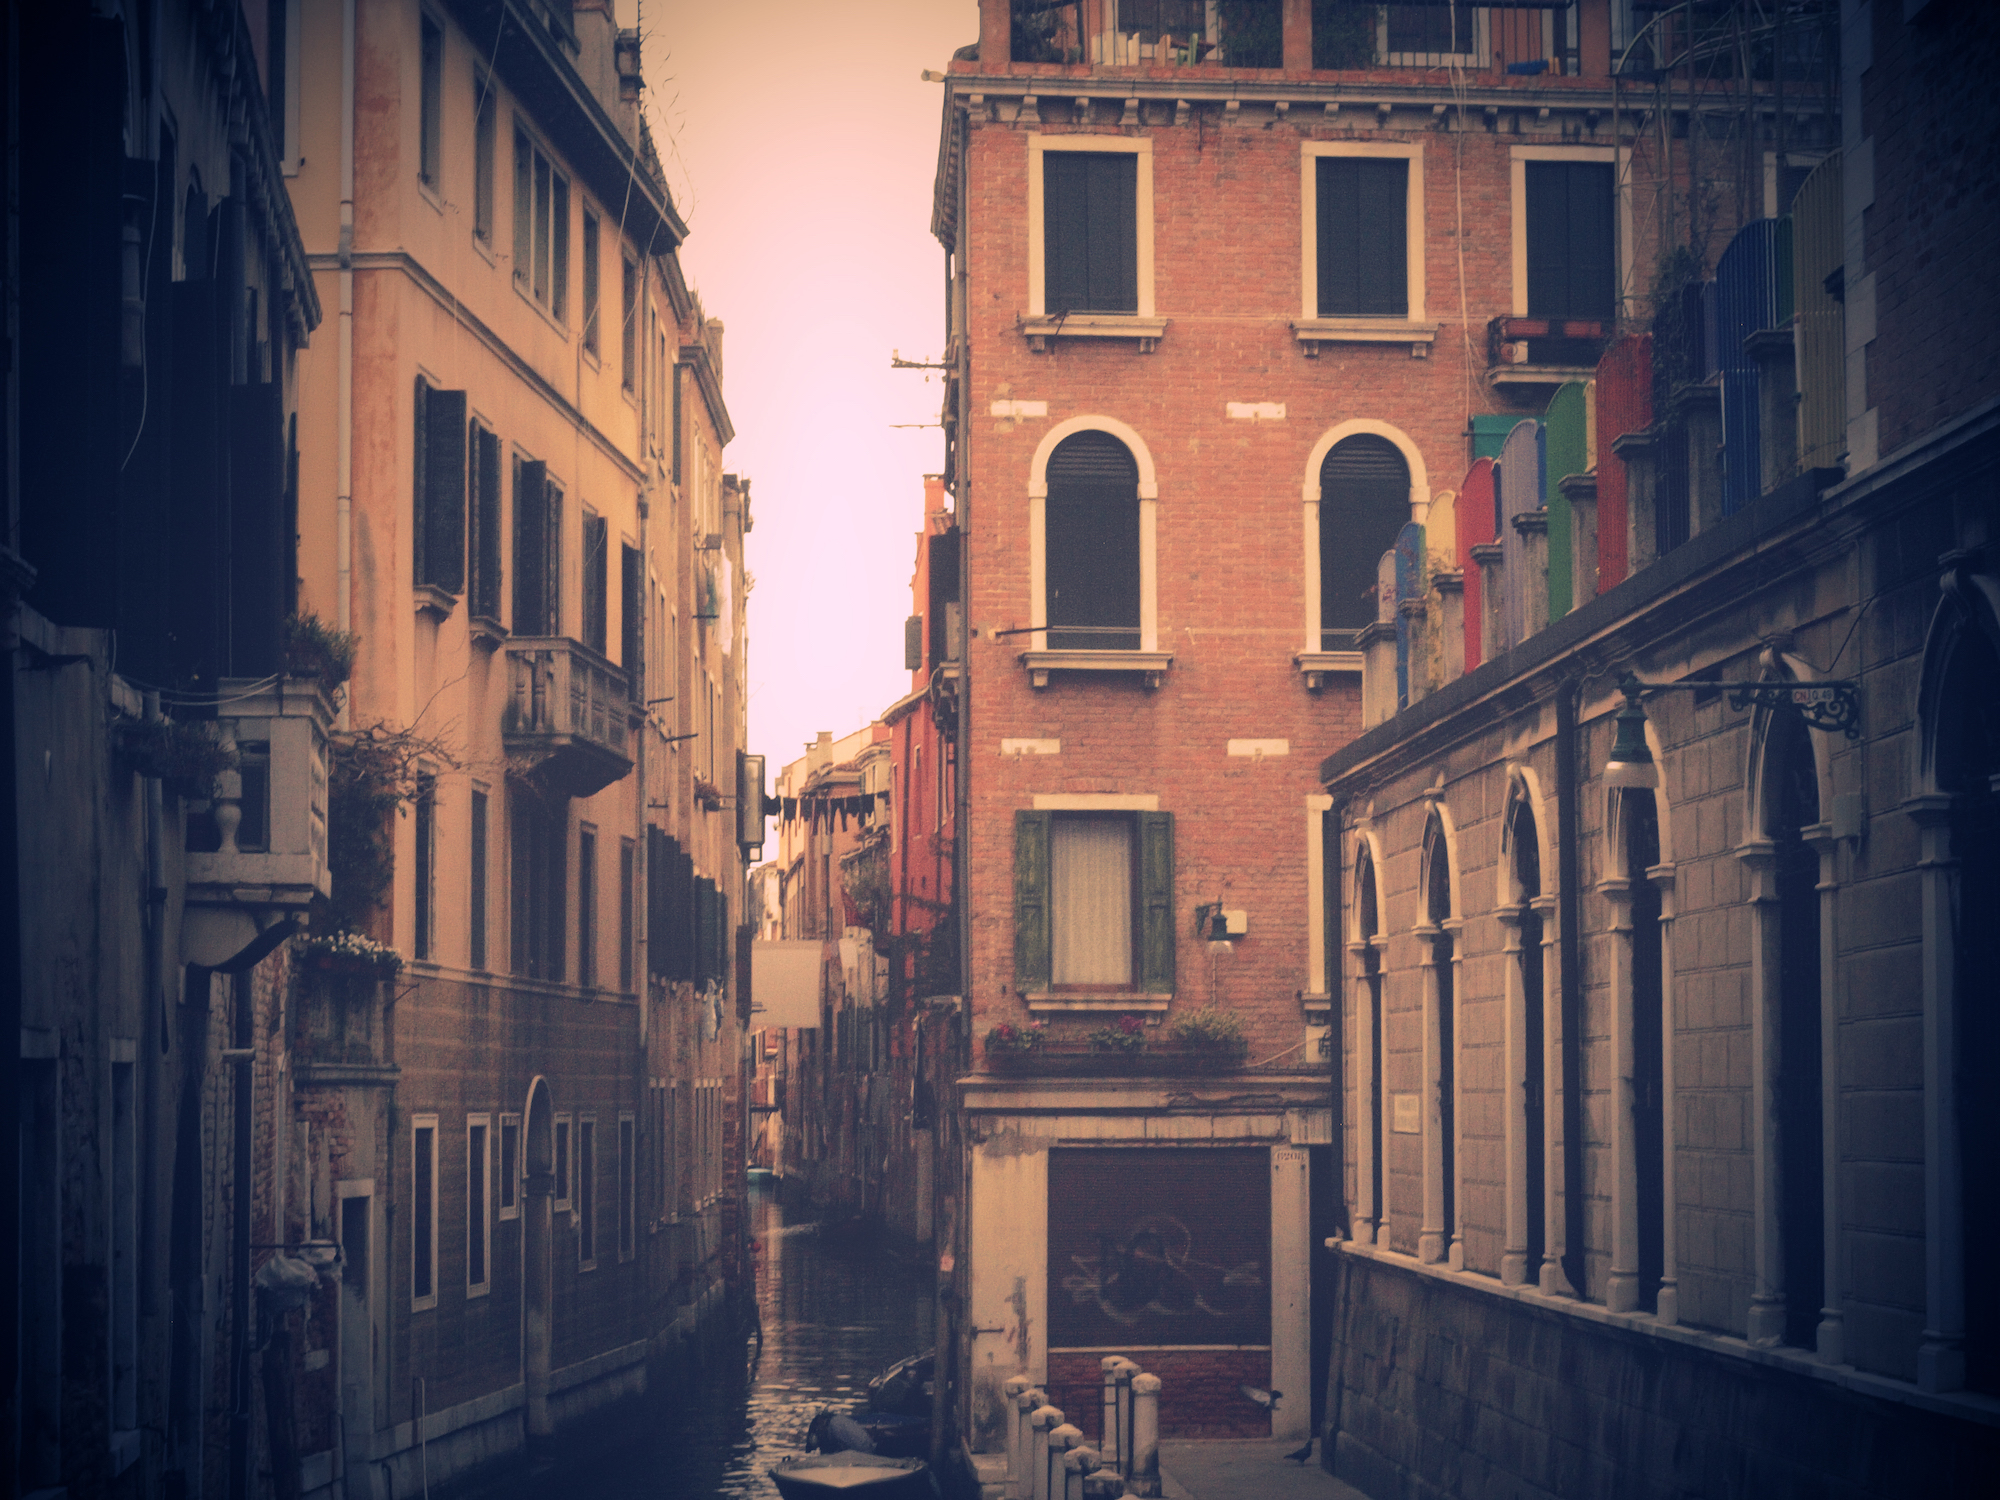 Part of 'Trip To Italy' series by Geena Matuson @geenamatuson, 2011.